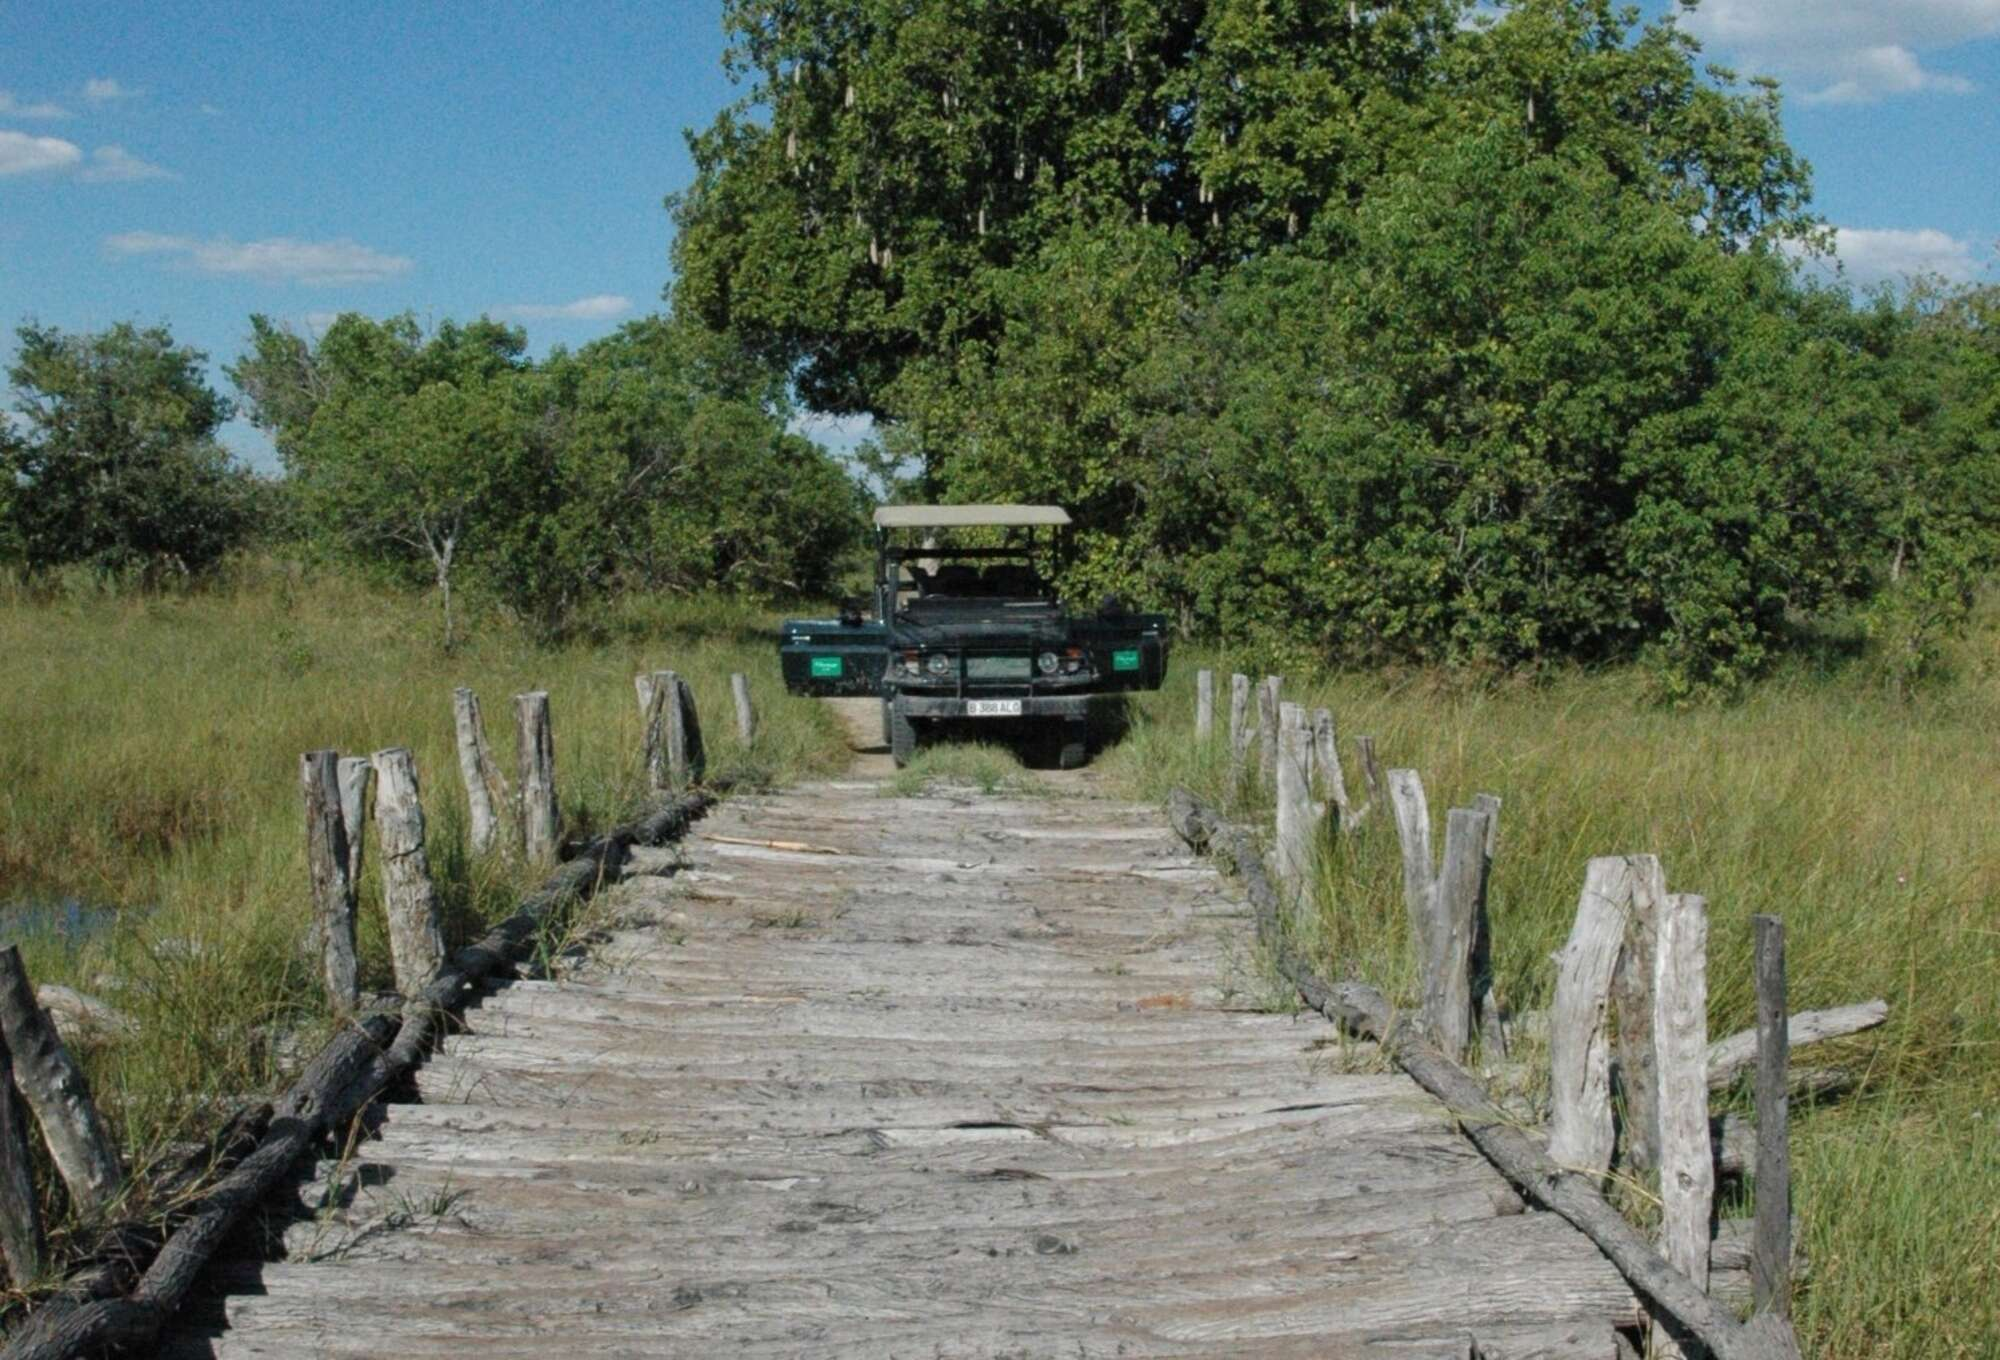 Botswana private mobile safari in the Moremi Game Reserve.